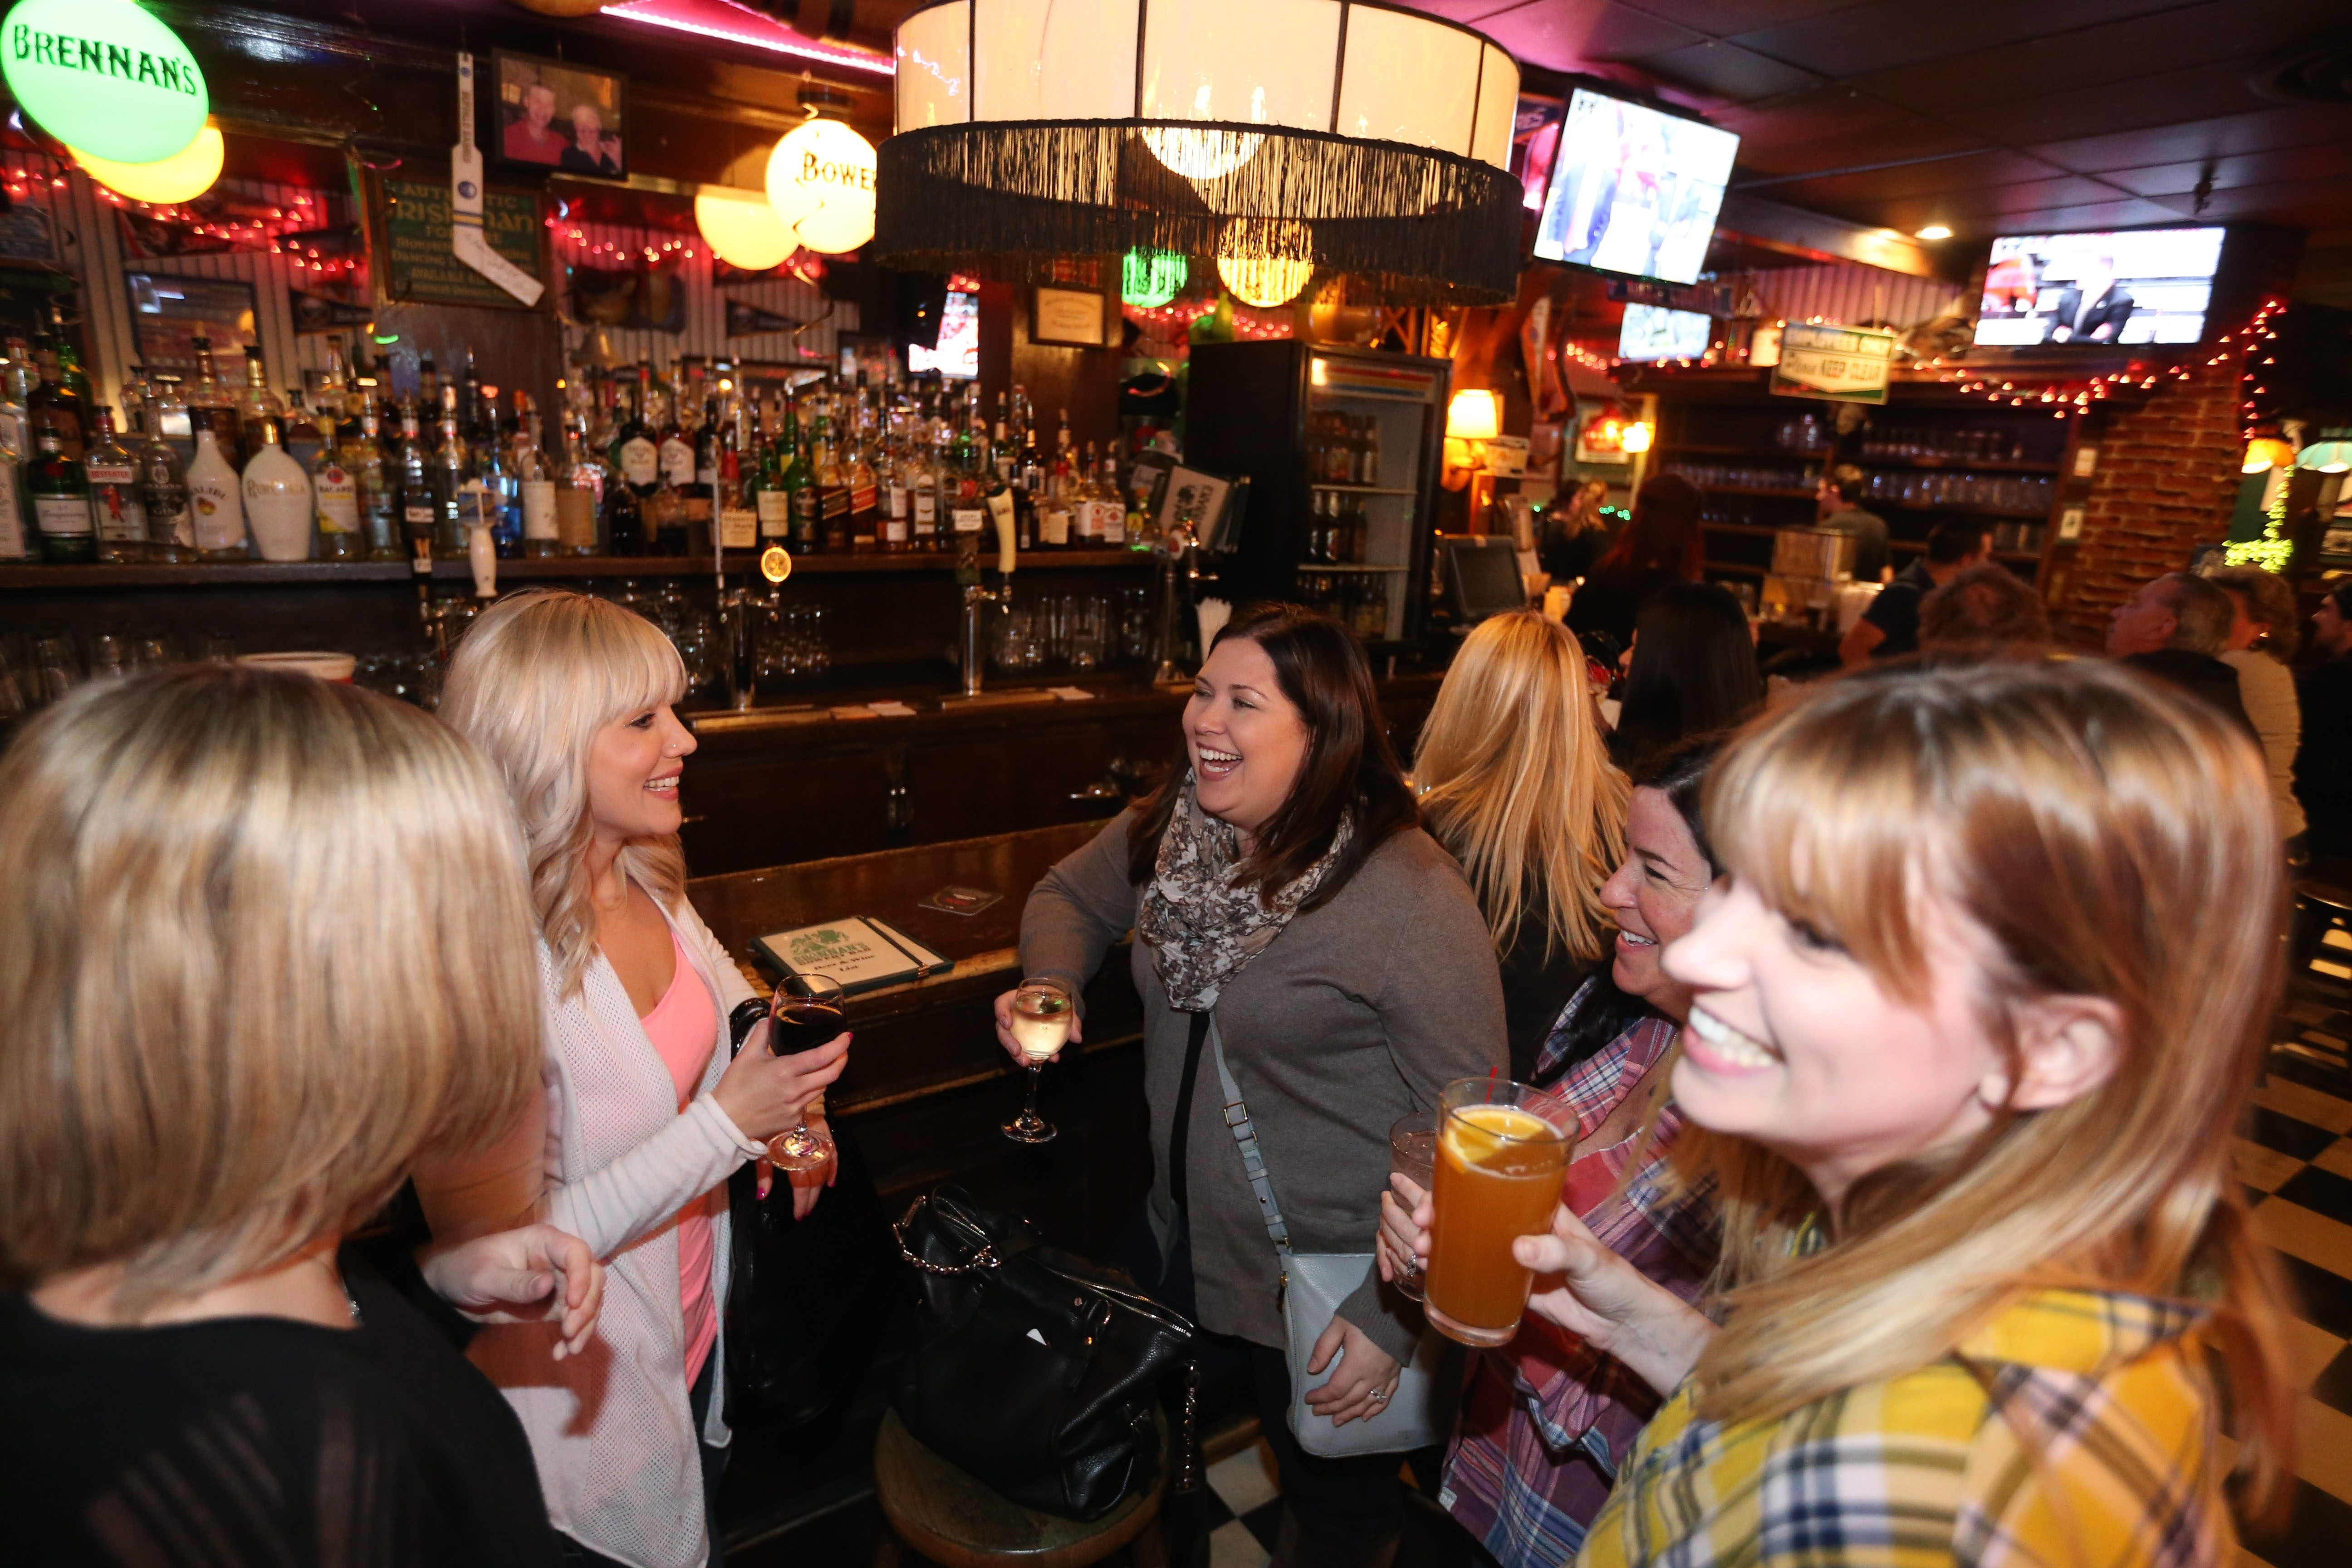 Brennan's Bowery Bar at 4401 Tranist Rd. in Clarence, has been in business for 45 years.  Hanging out from left are Jen Stepniak, Michelle Waltz, Jacki Patnella, Rose Duncand an Stacey Roach, Tuesday, Jan. 26, 2016.  (Sharon Cantillon/Buffalo News)